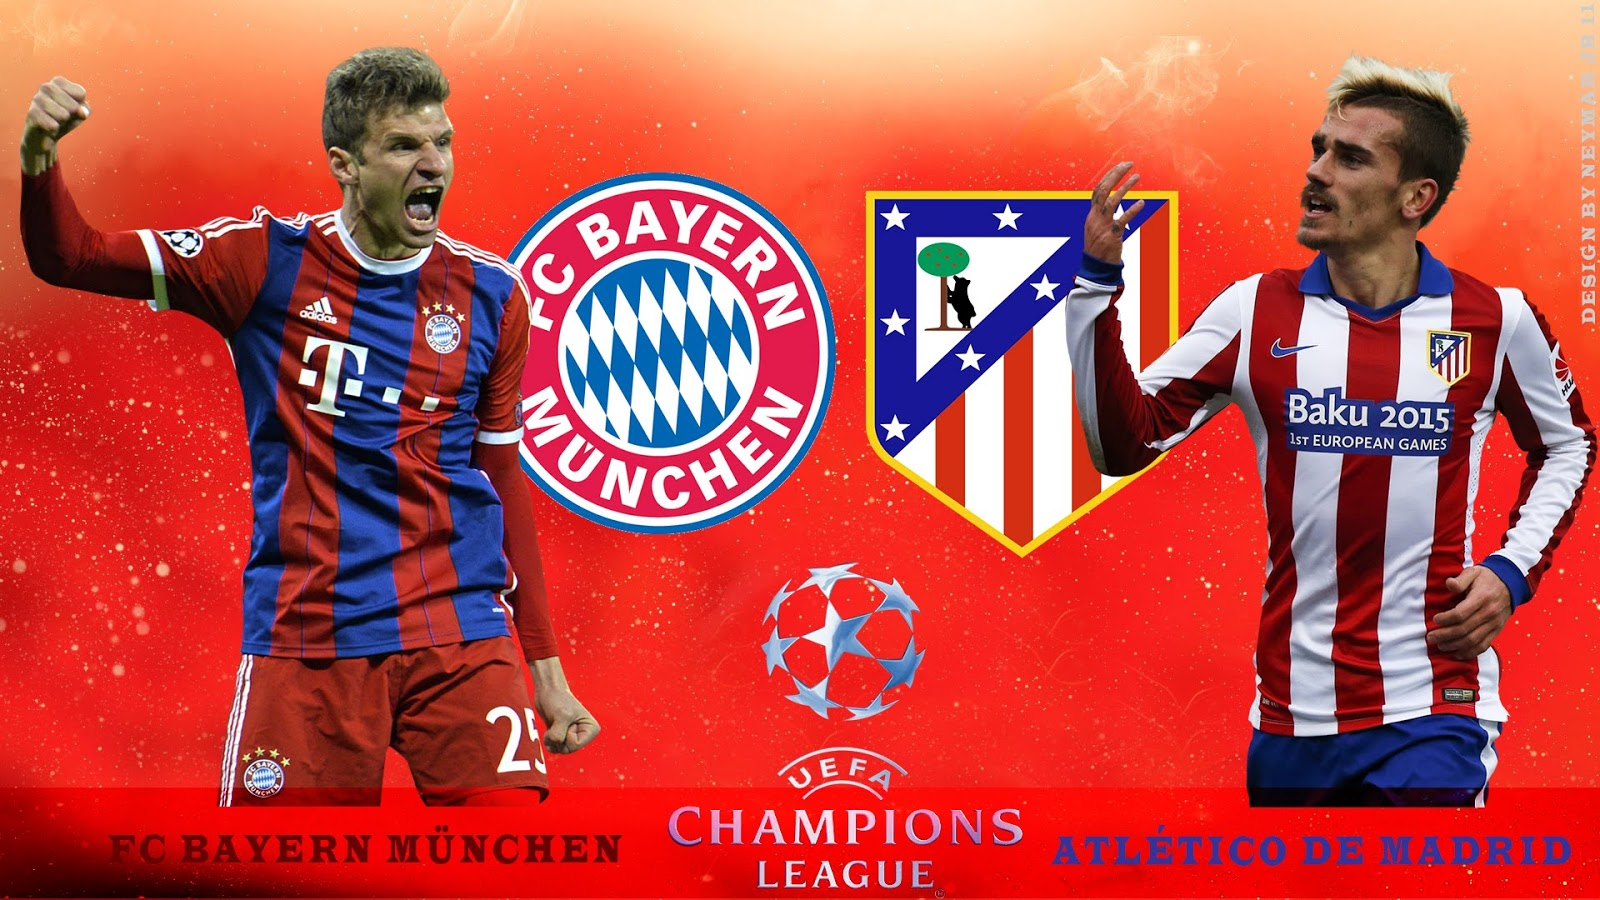 bayern mГјnchen atletico madrid